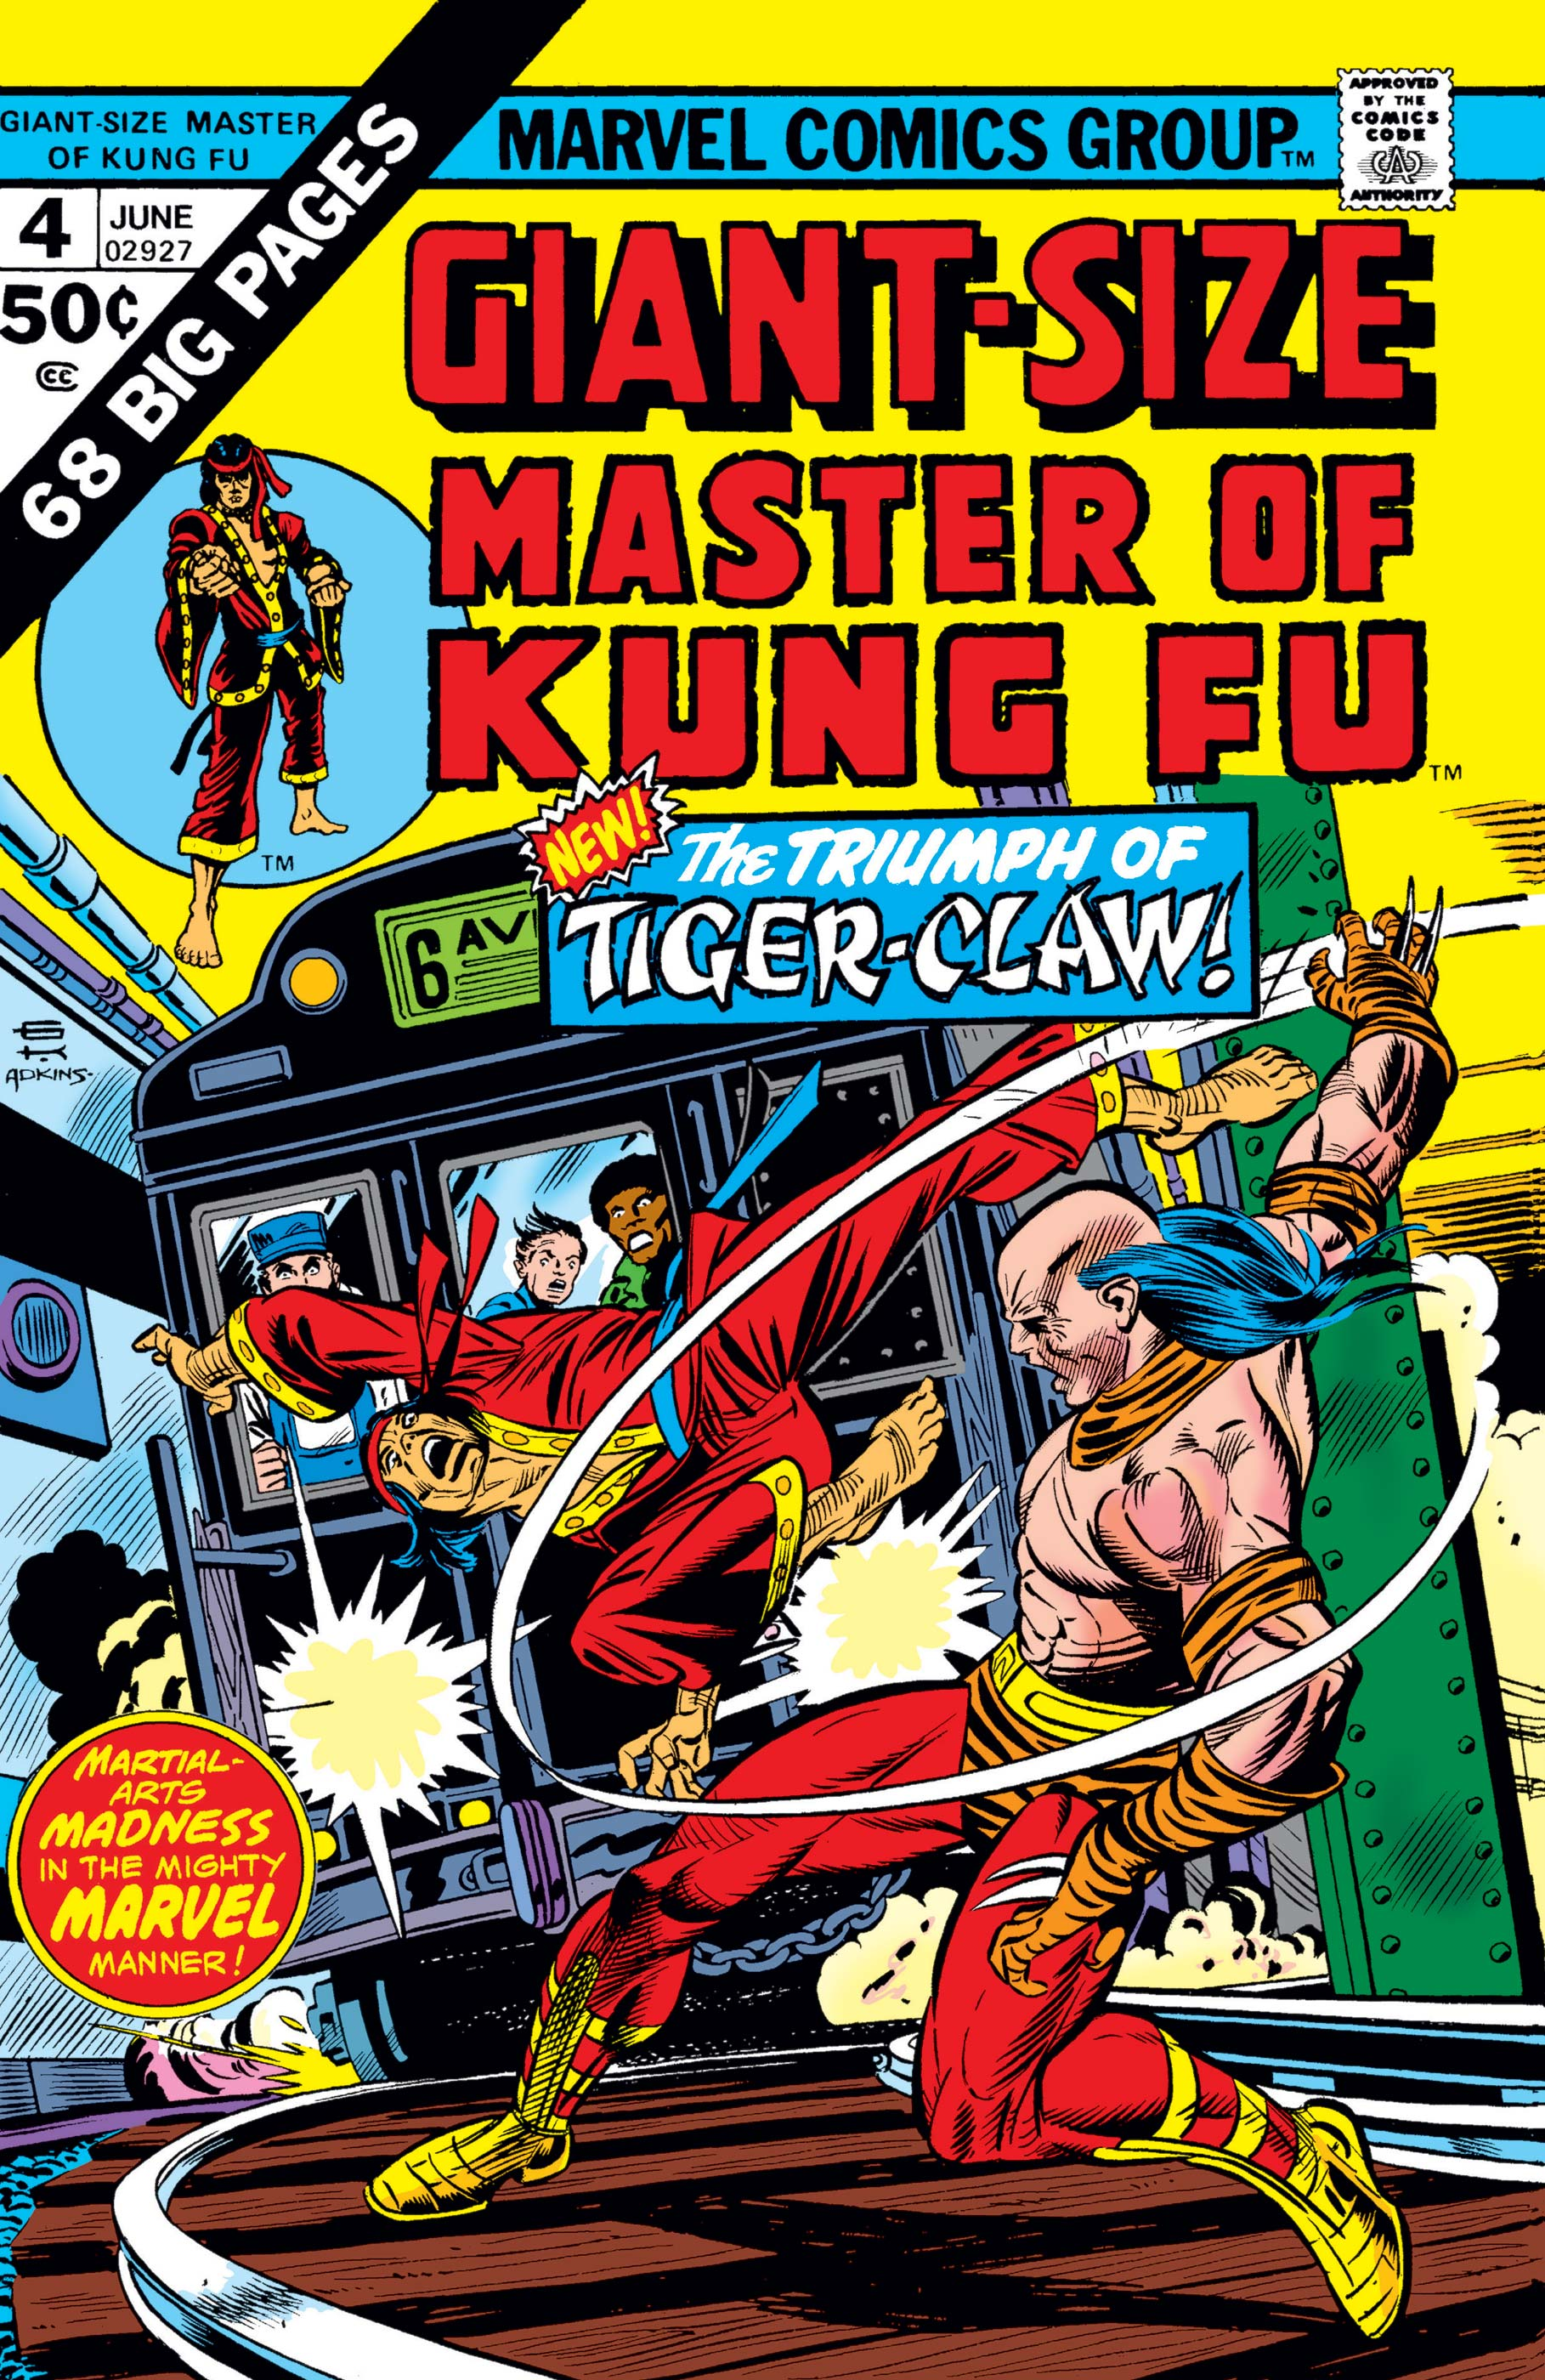 Giant-Size Master of Kung Fu (1974) #4